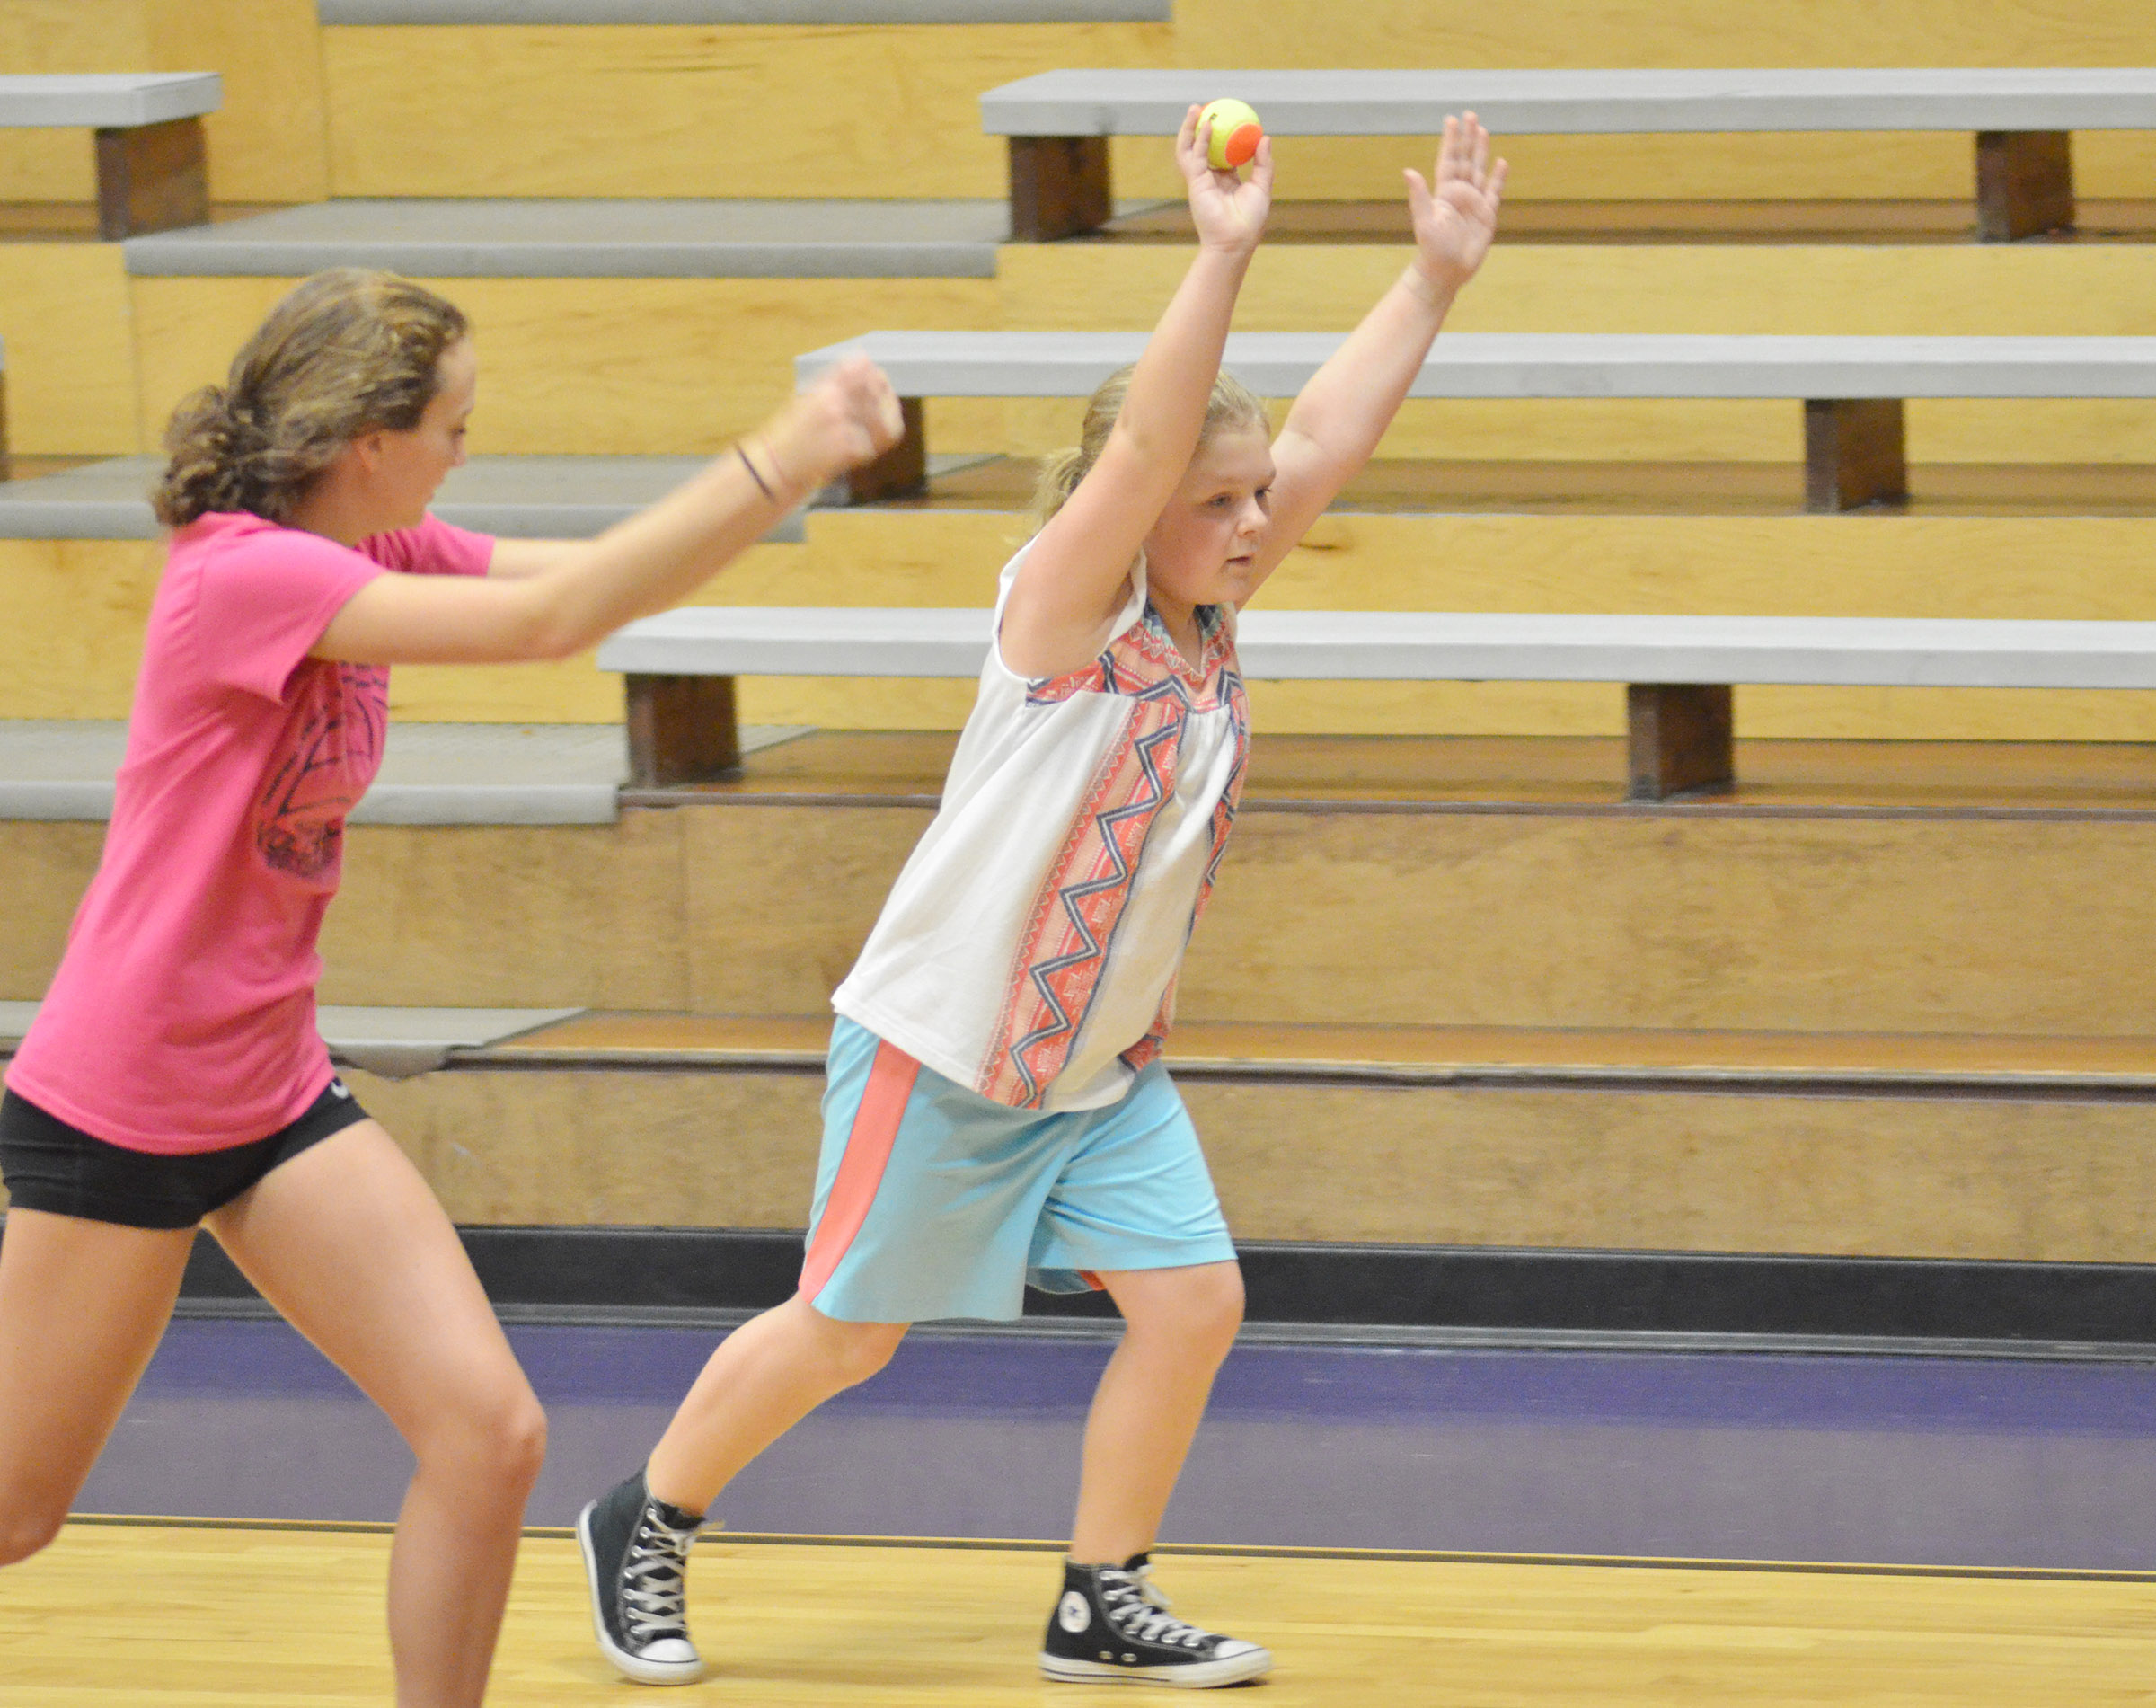 CHS junior Salena Ritchie helps CMS sixth-grader Alexis Sharp do a drill.